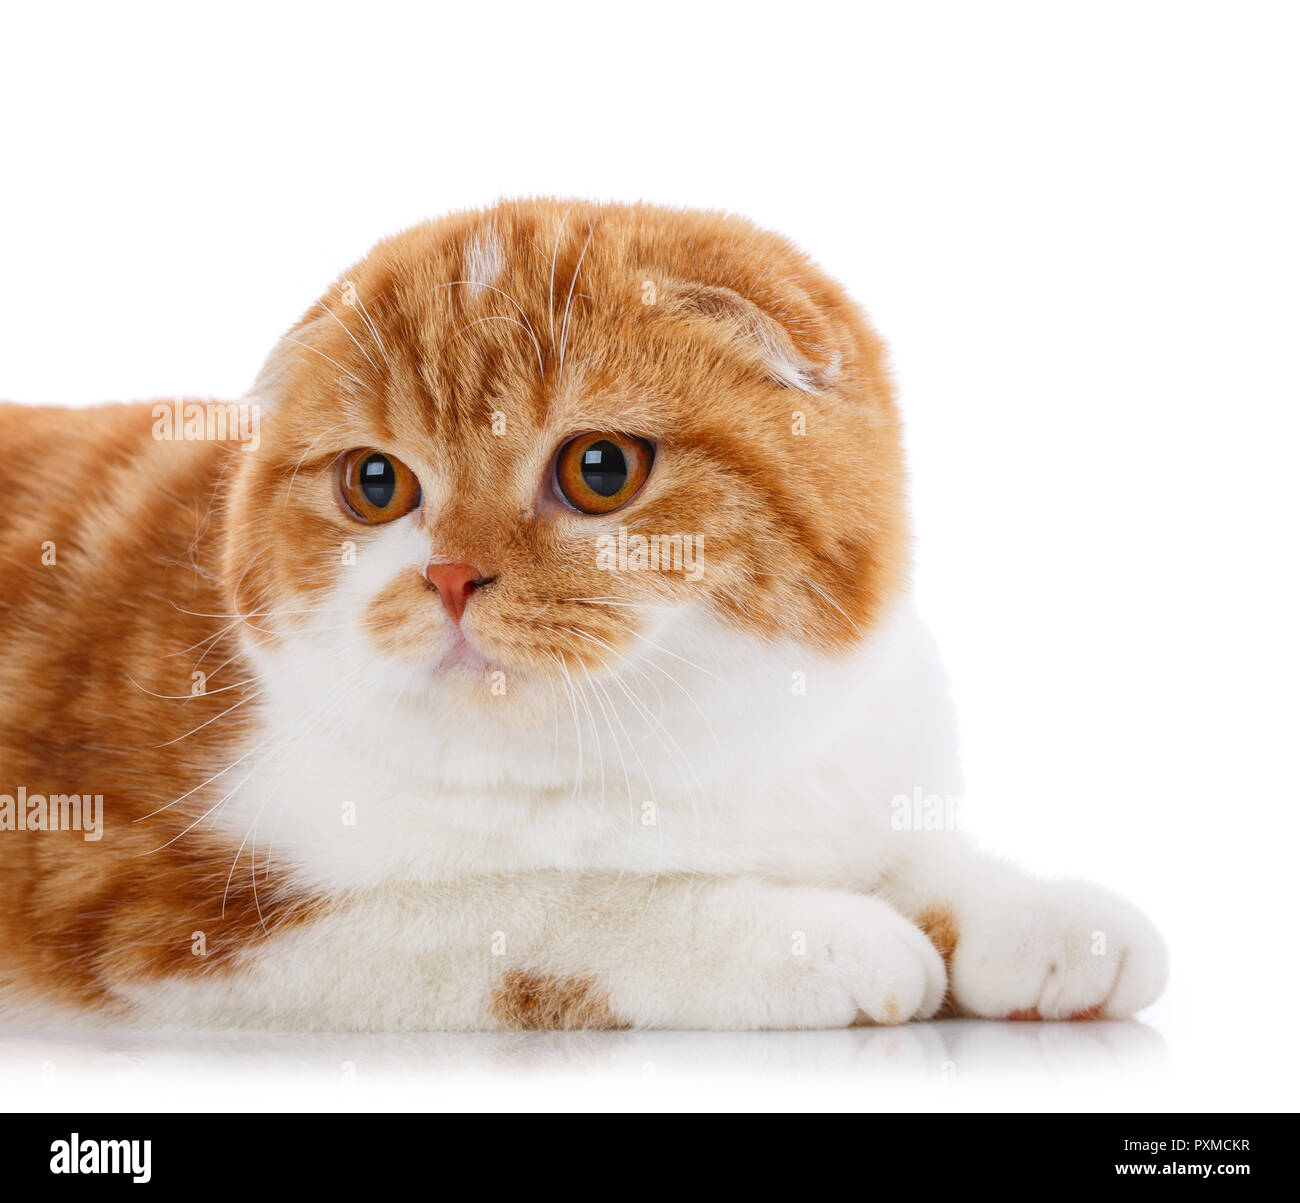 Cute playful cat. Pets, animals and cats concept - Purebred British cat on a white background - Stock Image